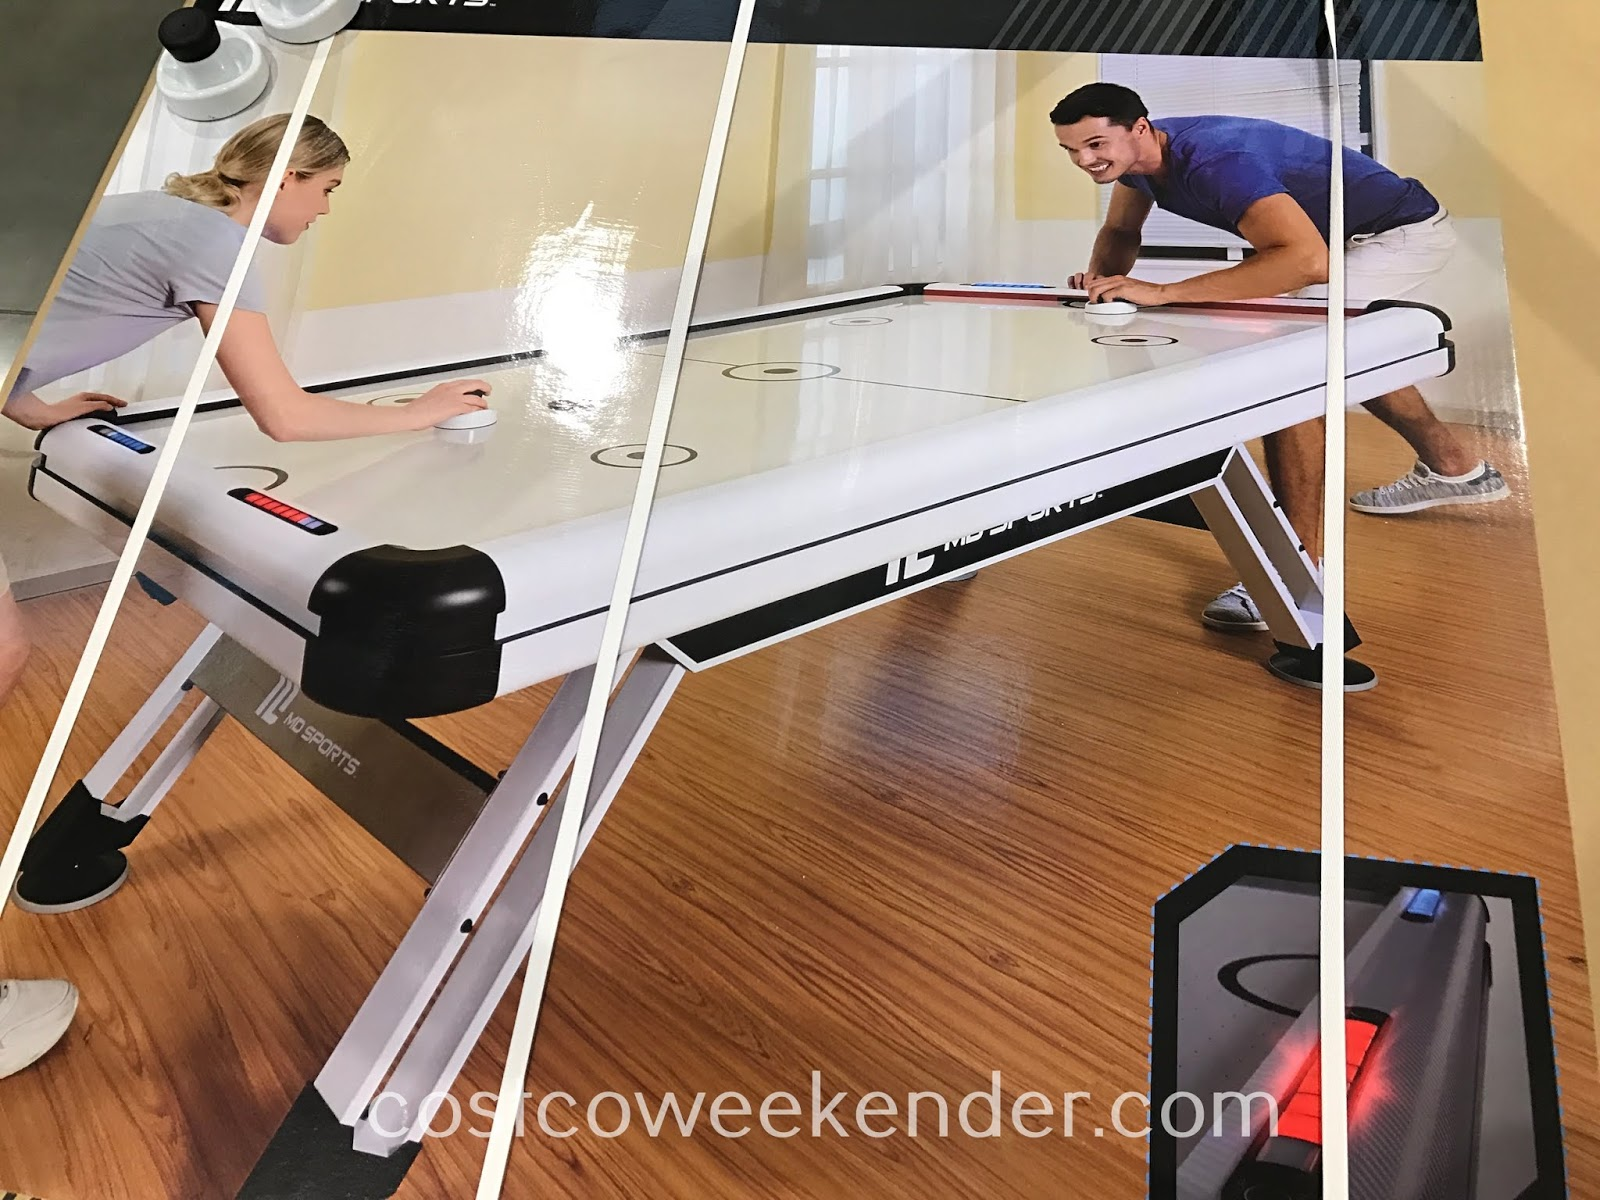 Family competition can be fierce with the MD Sports Air Hockey Table